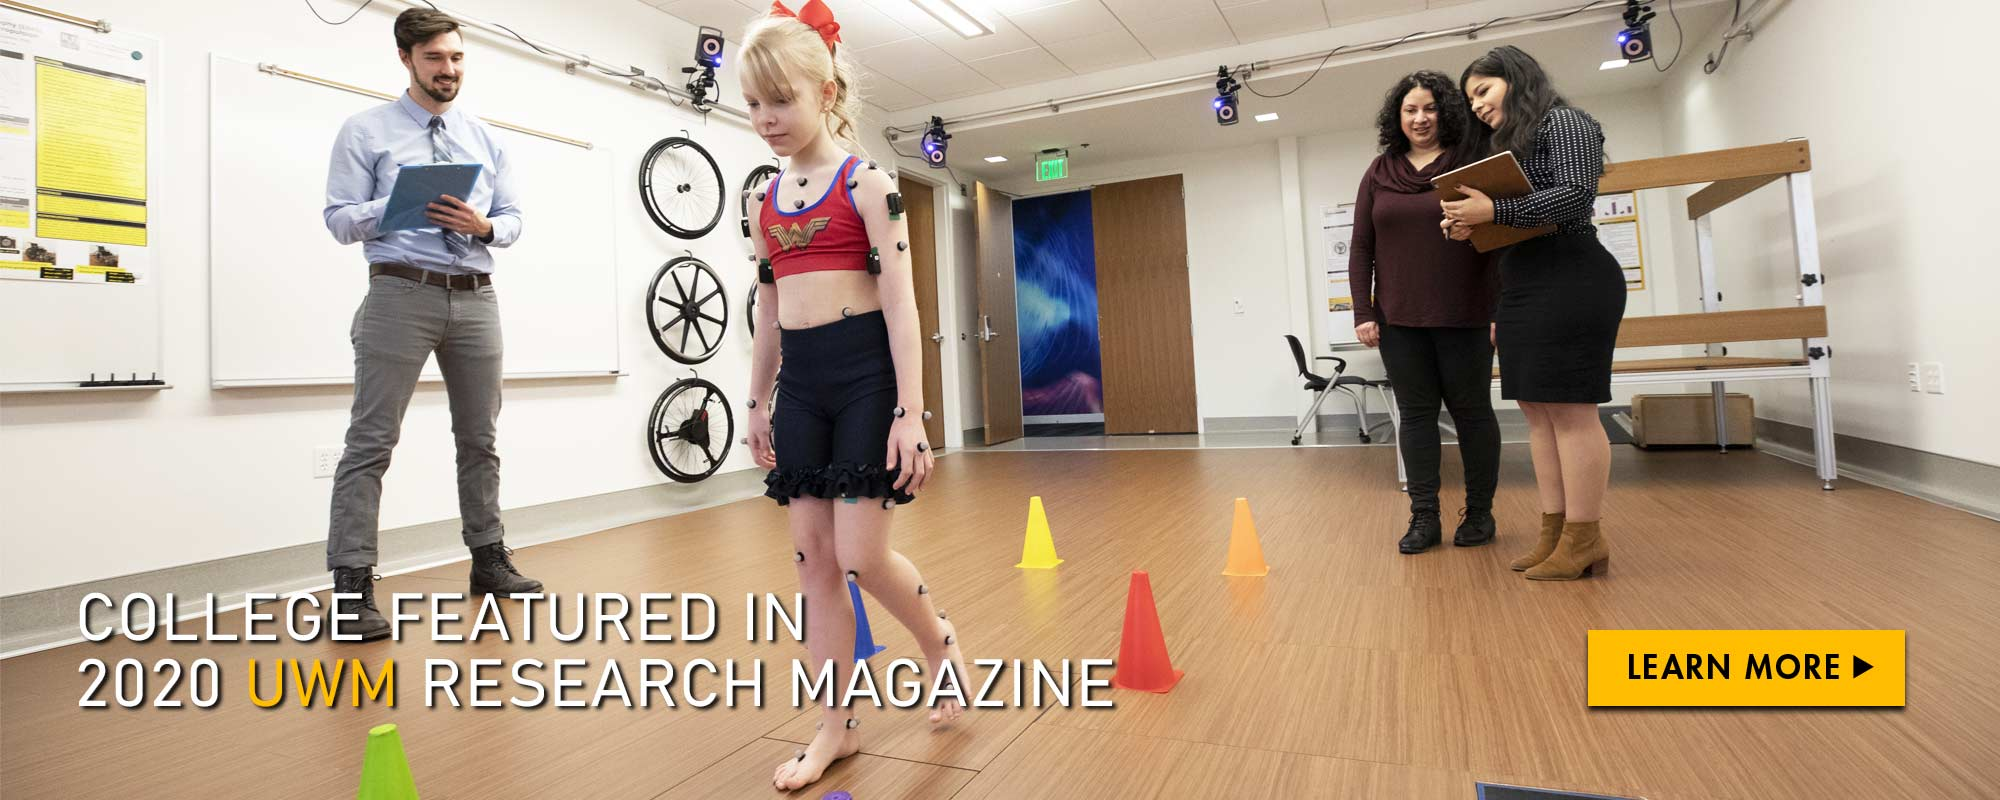 College featured in 2020 UWM Research magazine. Learn more.